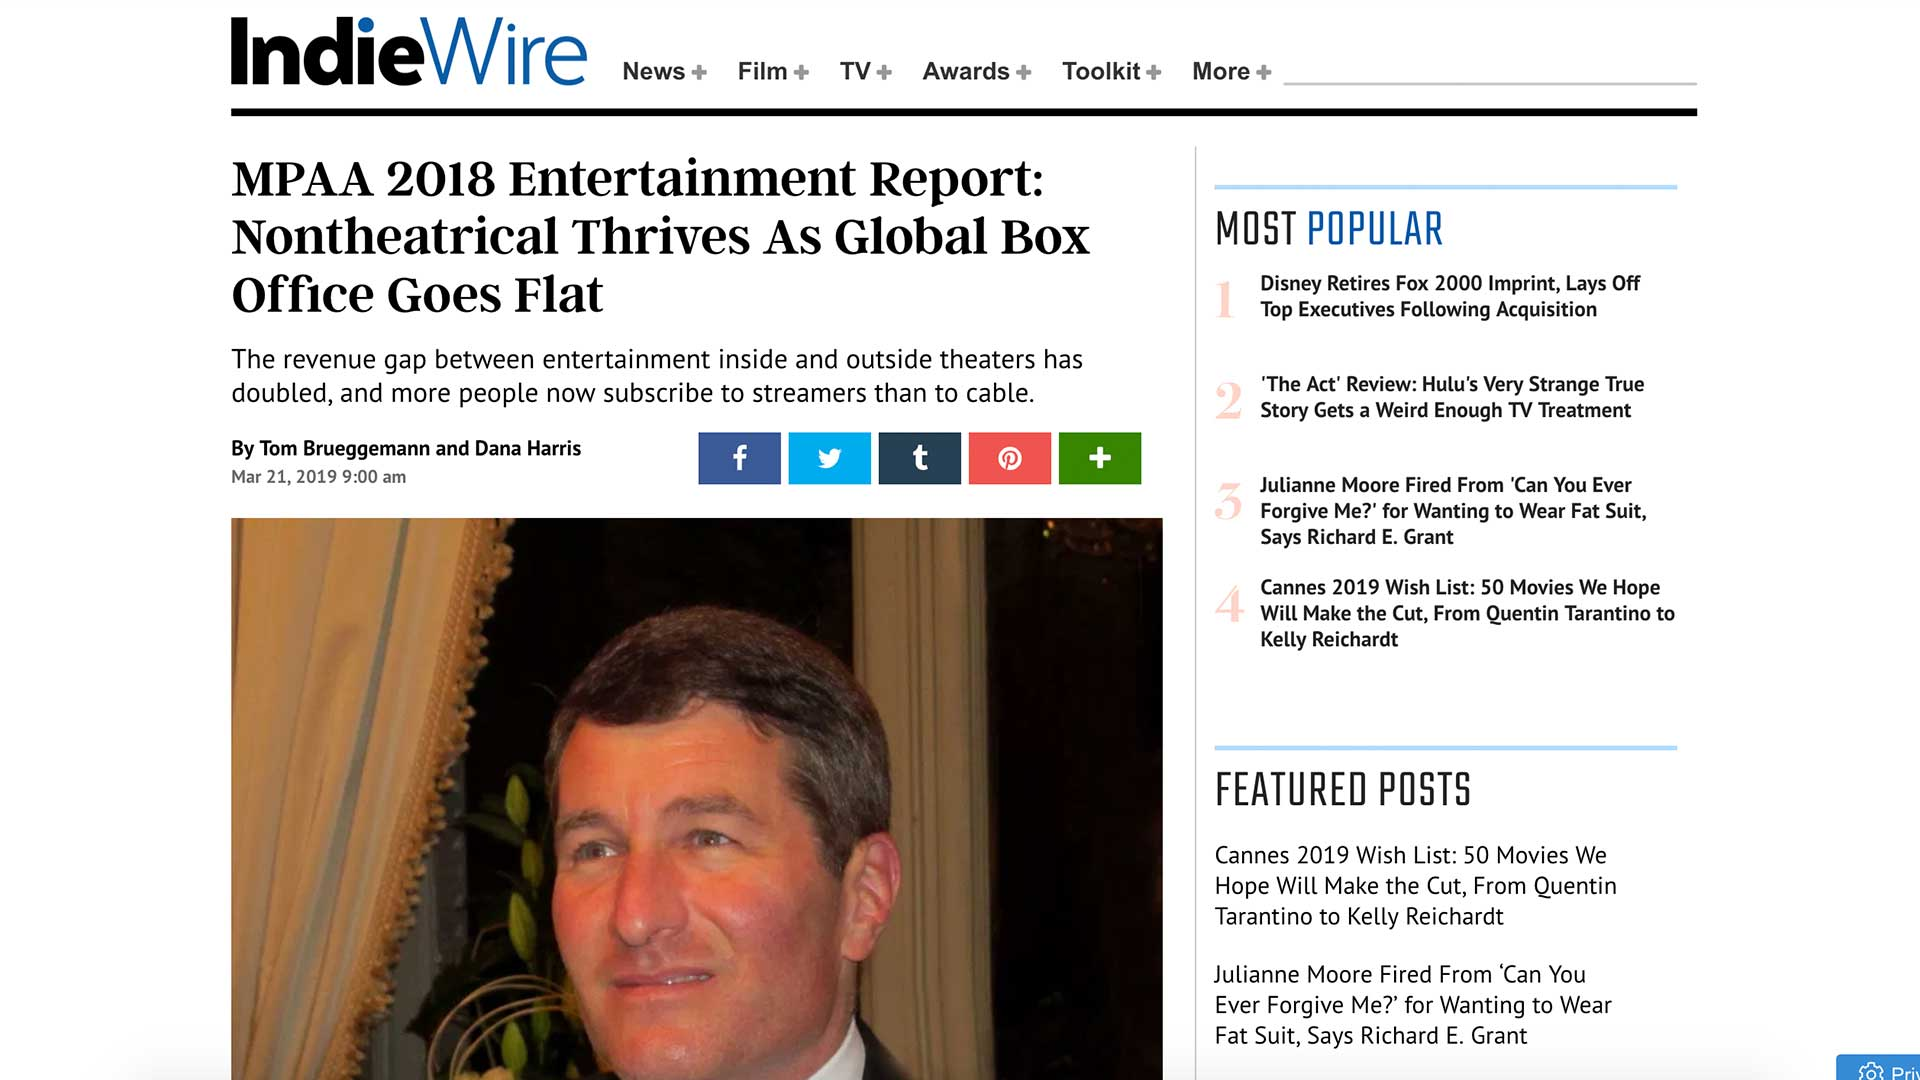 Fairness Rocks News MPAA 2018 Entertainment Report: Nontheatrical Thrives As Global Box Office Goes Flat